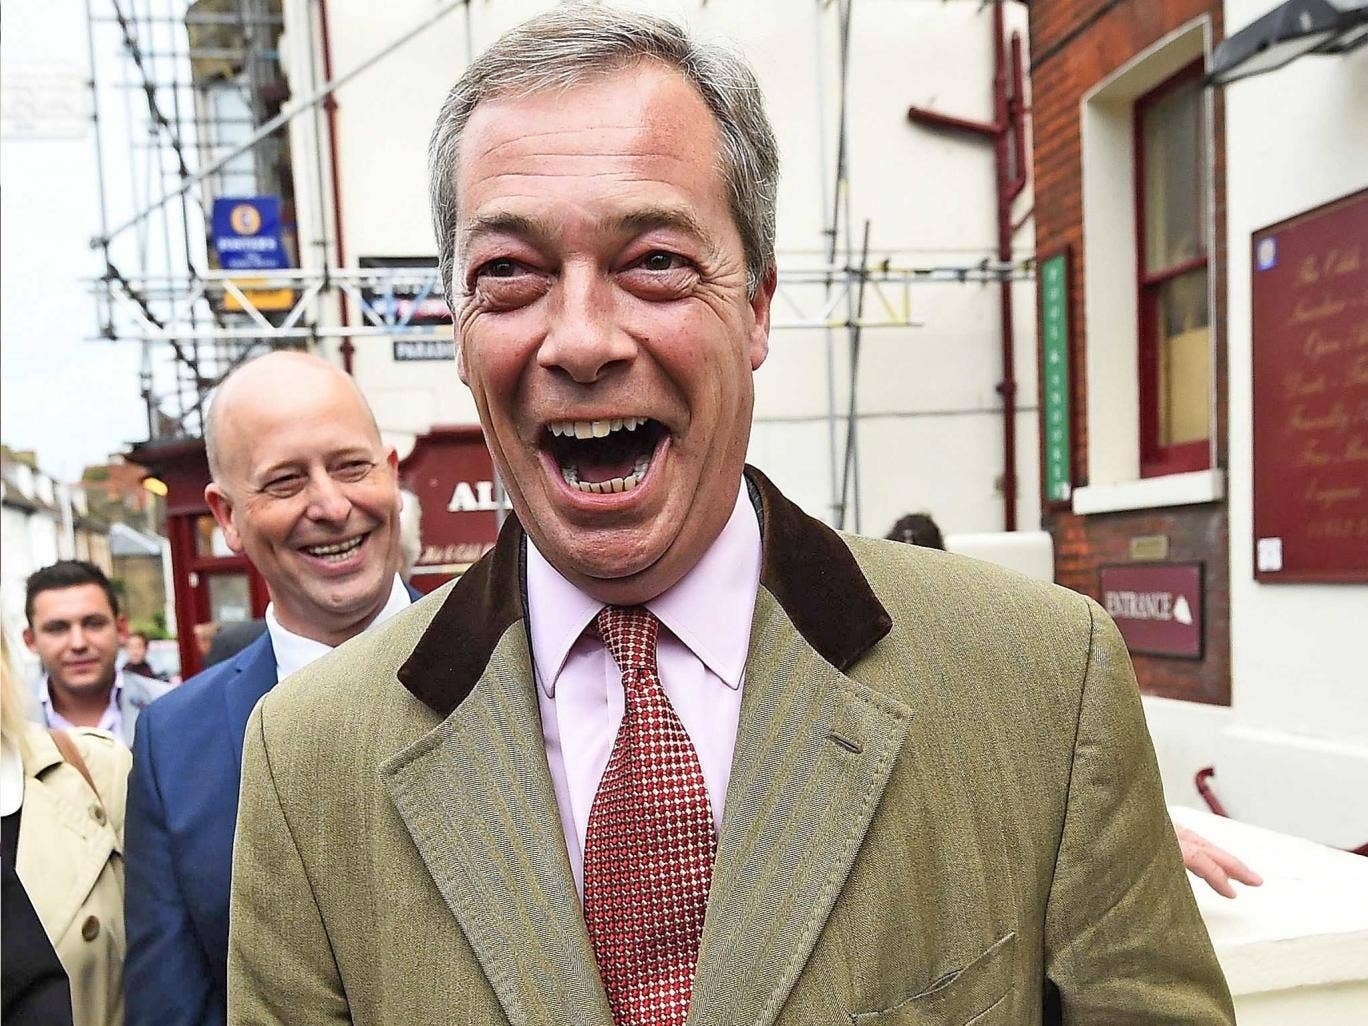 Nigel Farage arrives for a hustings event at The Oddfellows Hall in Ramsgate on Tuesday